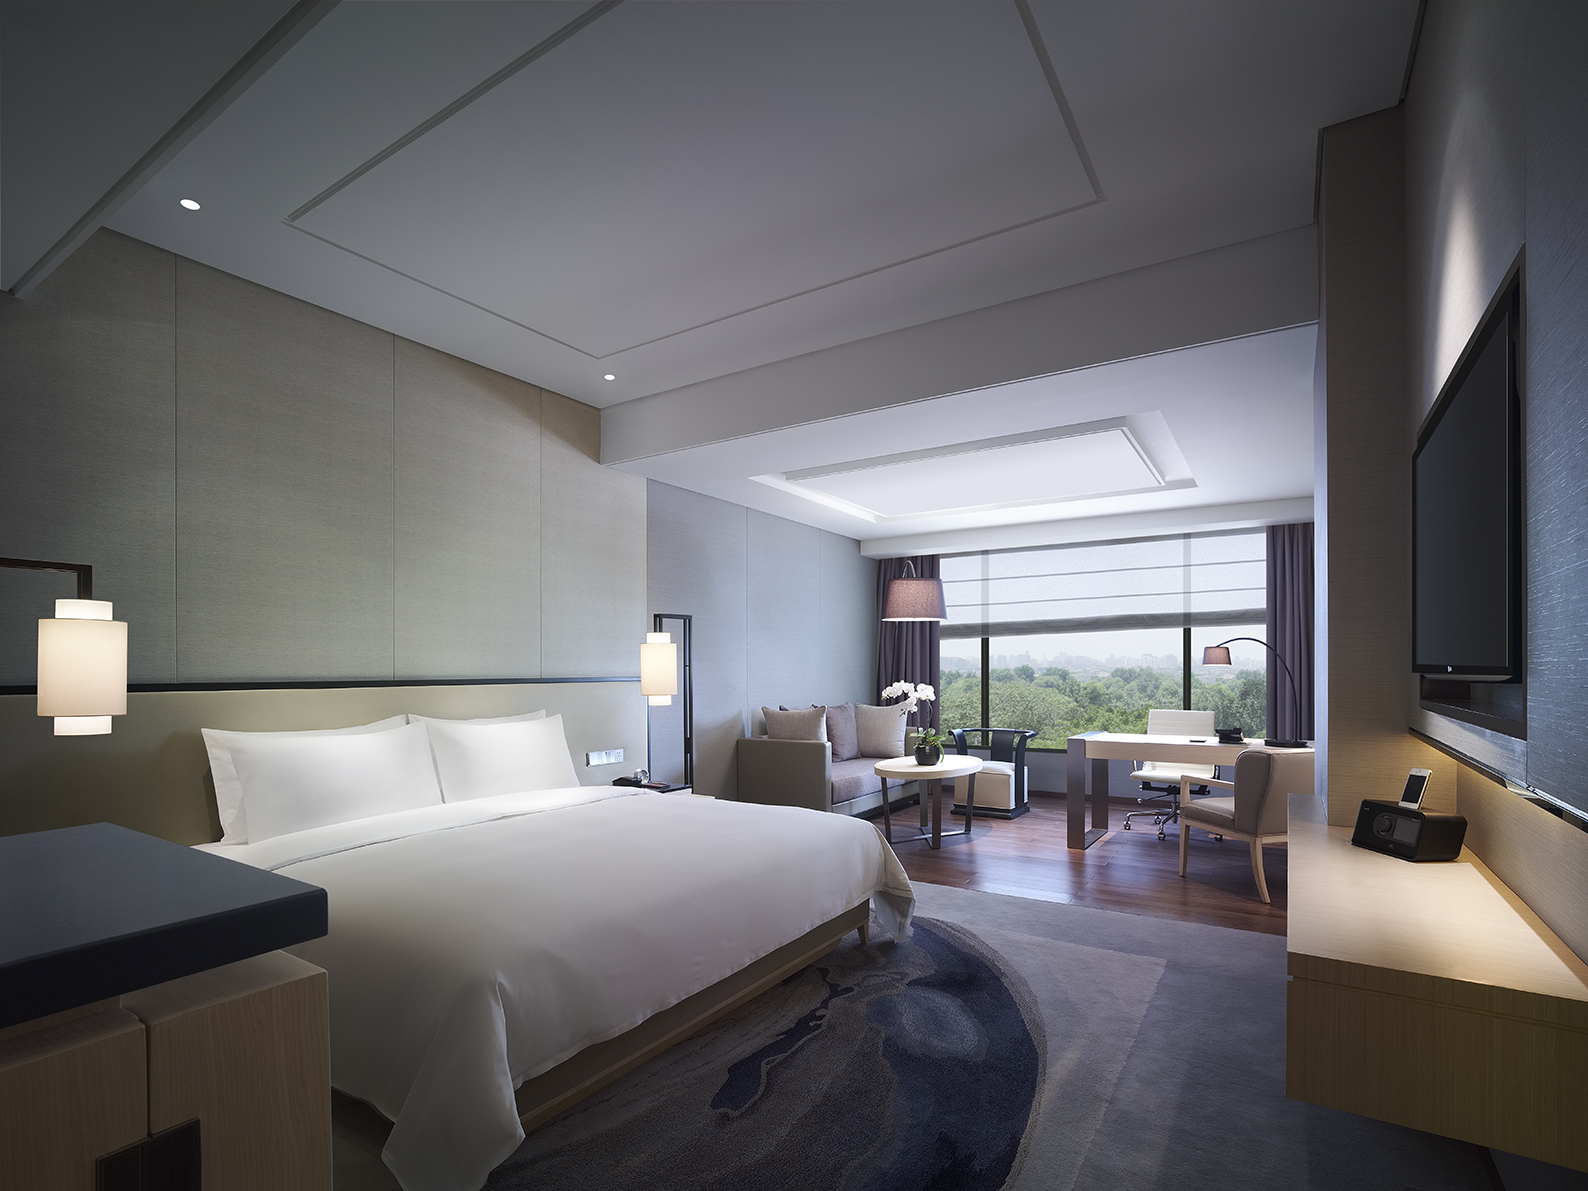 New world beijing hotel to open october 2013 for Design hotels of the world